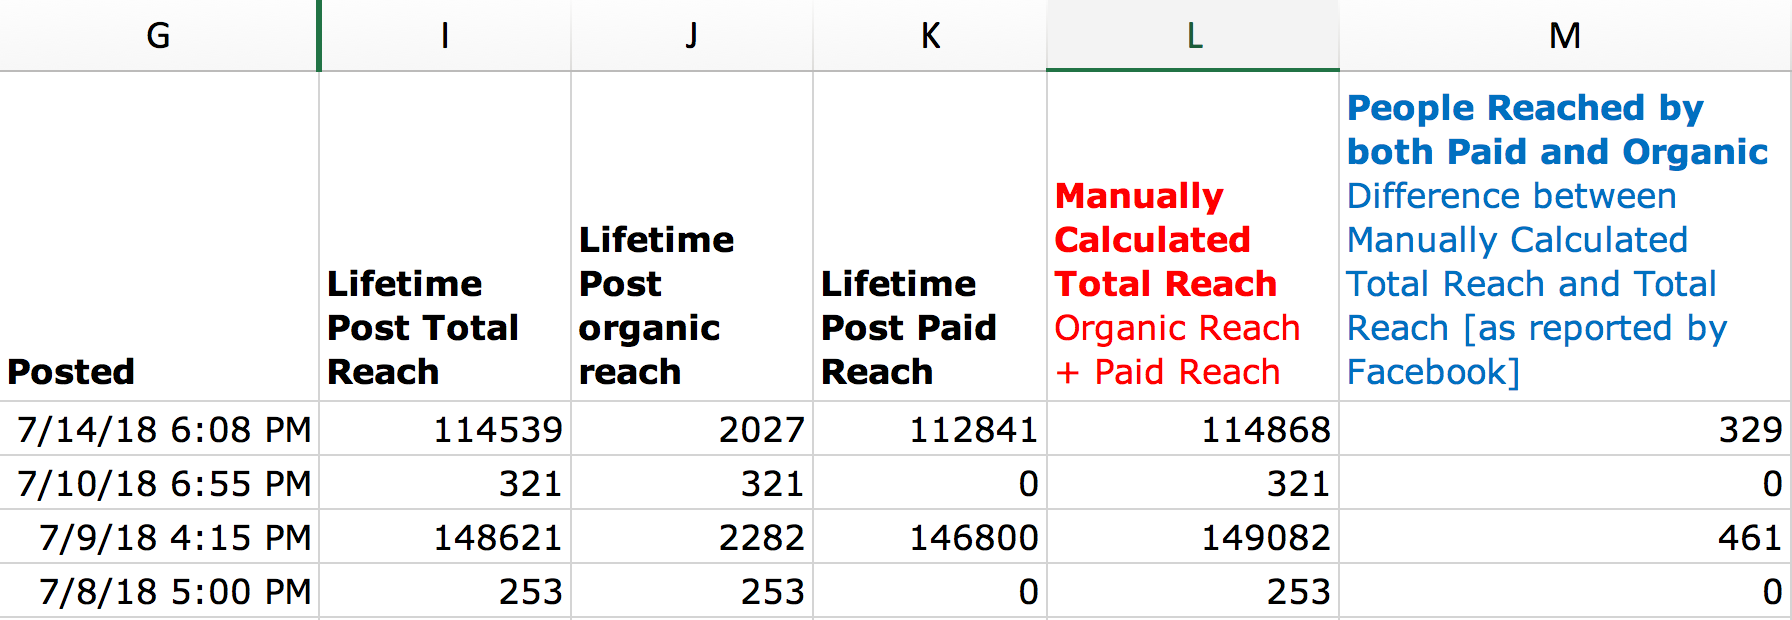 Facebook Post Reach - Export Example with Manual Calculations